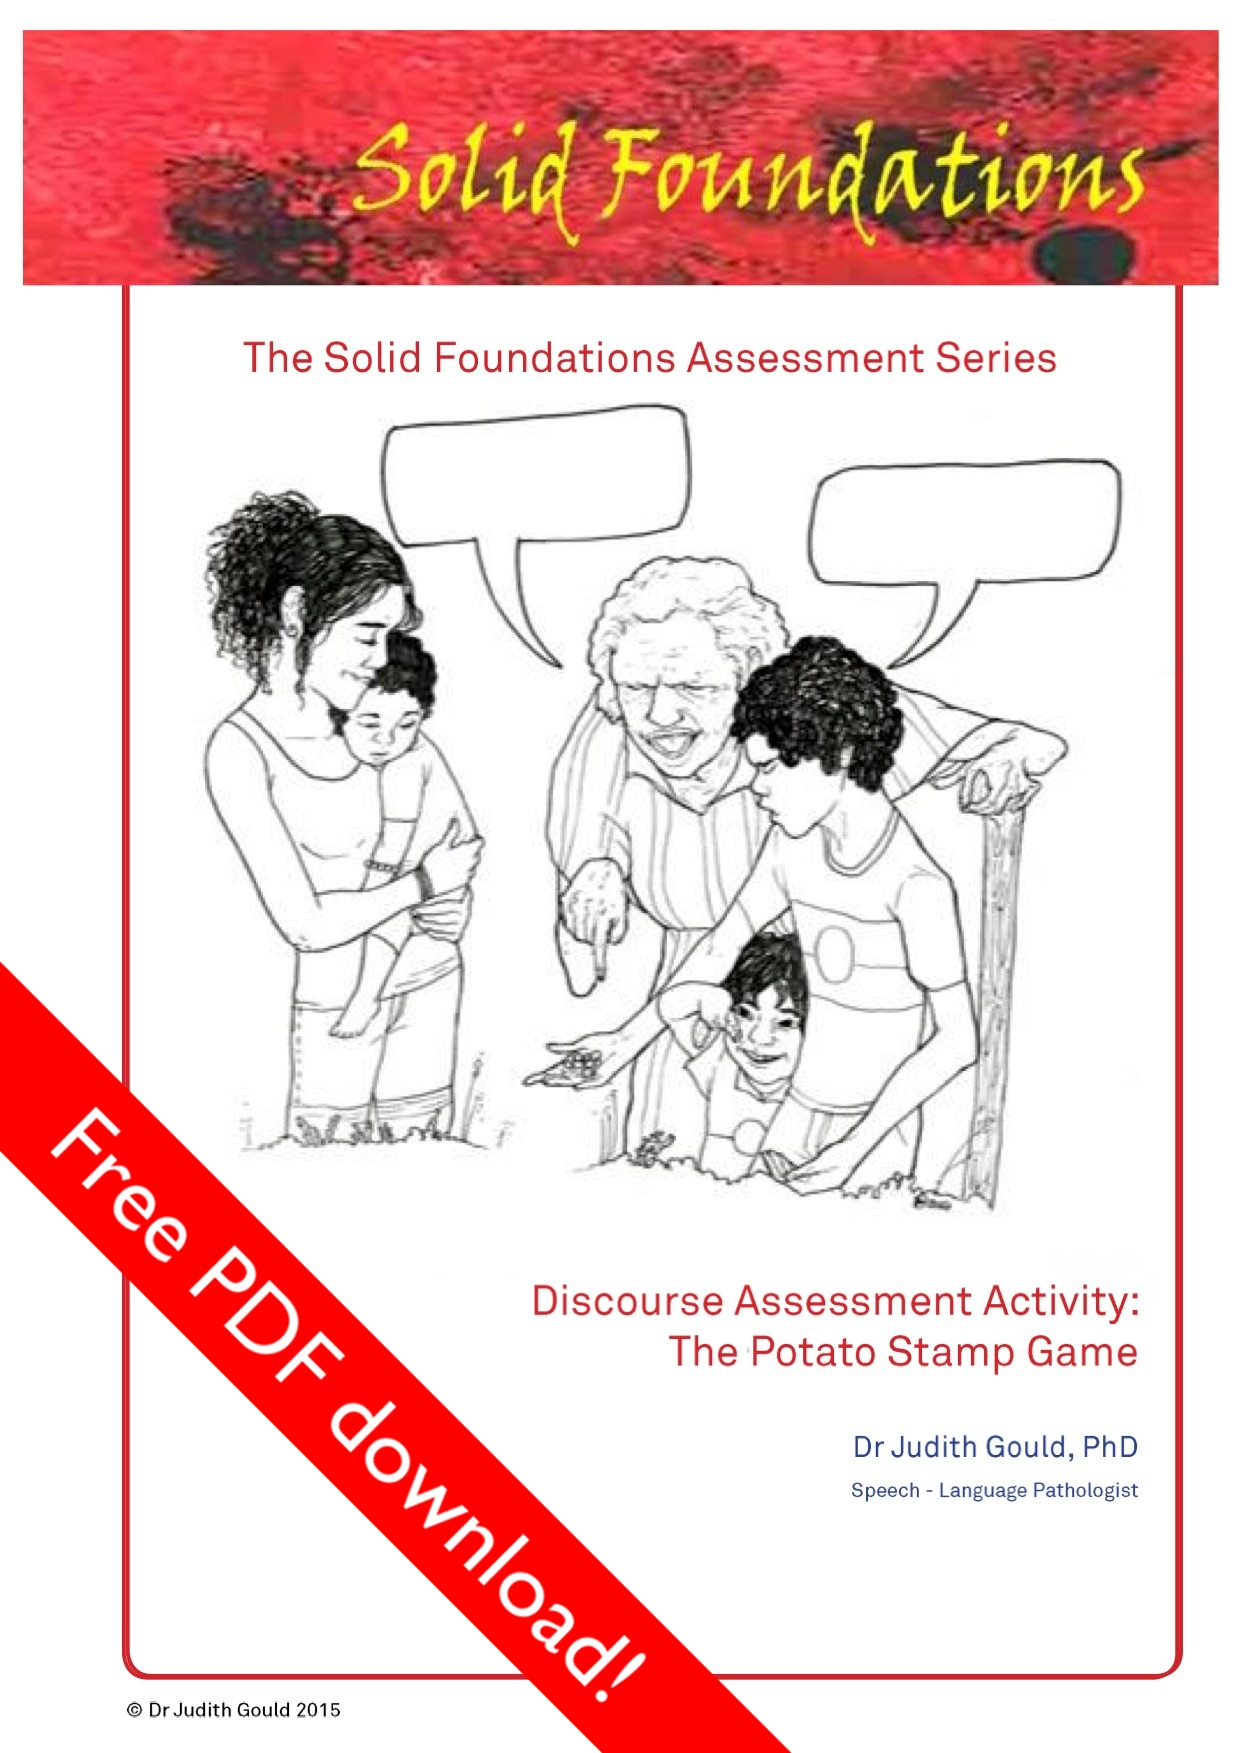 Discourse Assessment Activity: The Potato Stamp Game